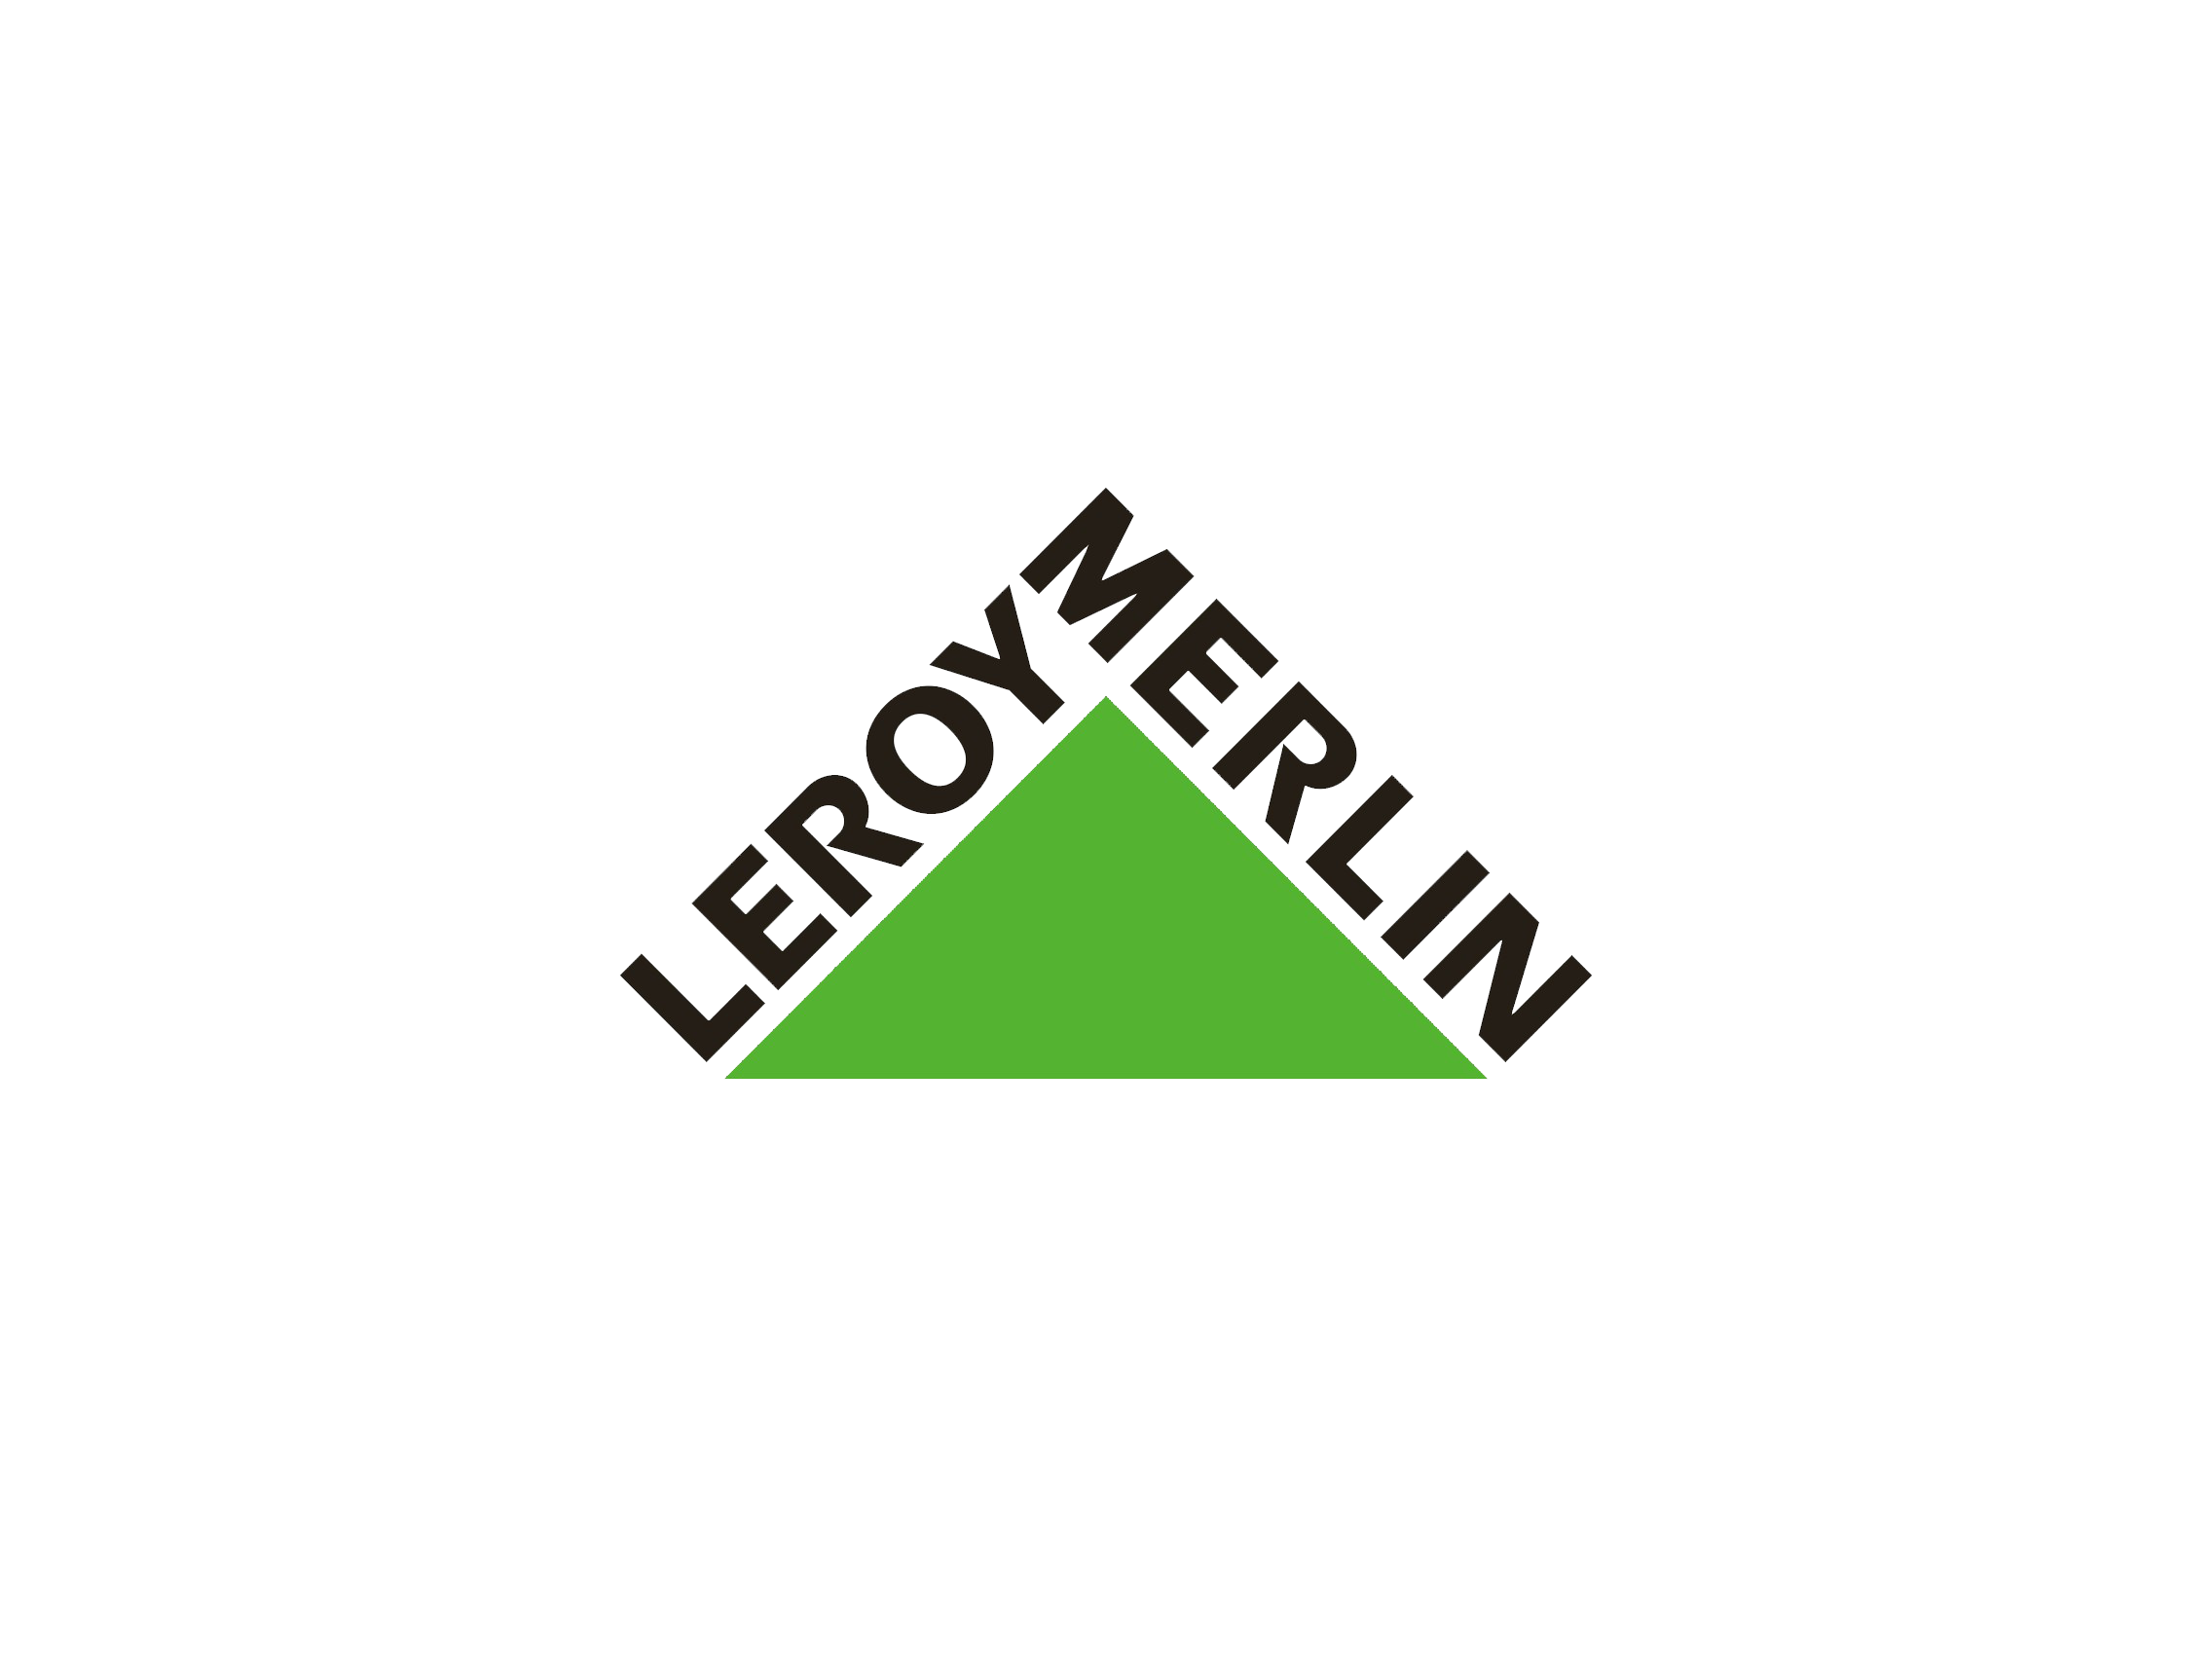 leroy merlin logo logok. Black Bedroom Furniture Sets. Home Design Ideas